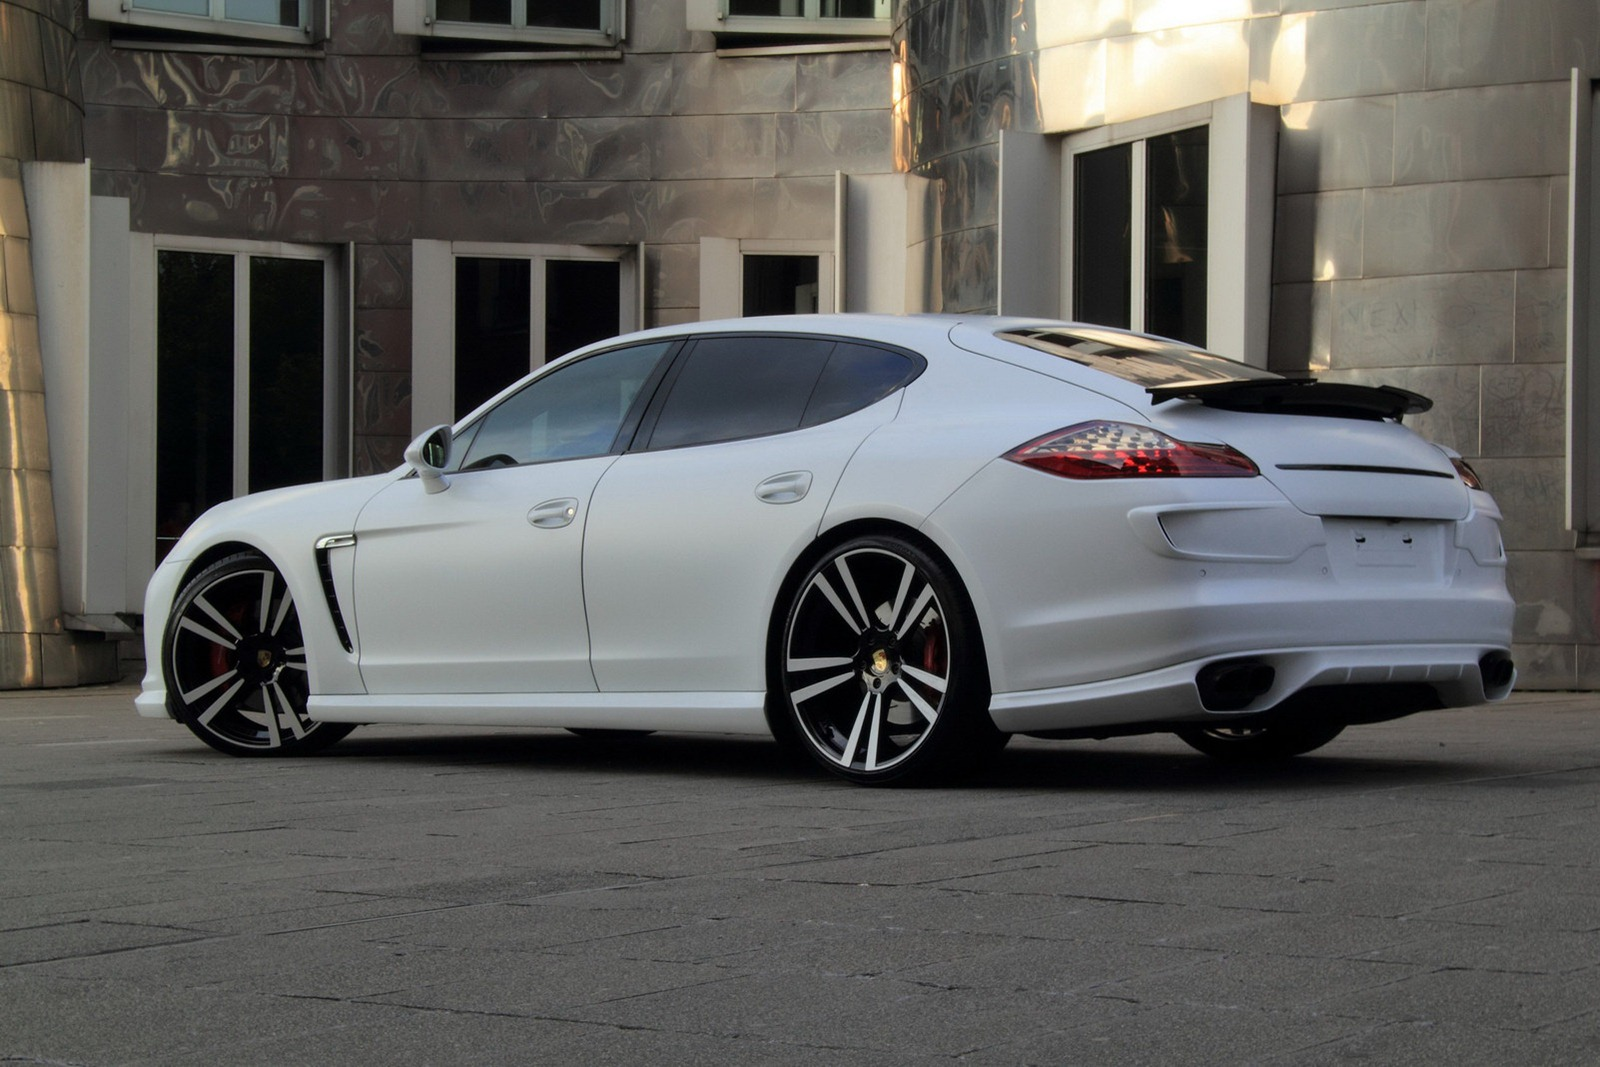 panamera gts turbo cars pinterest porsche panamera cars and car images